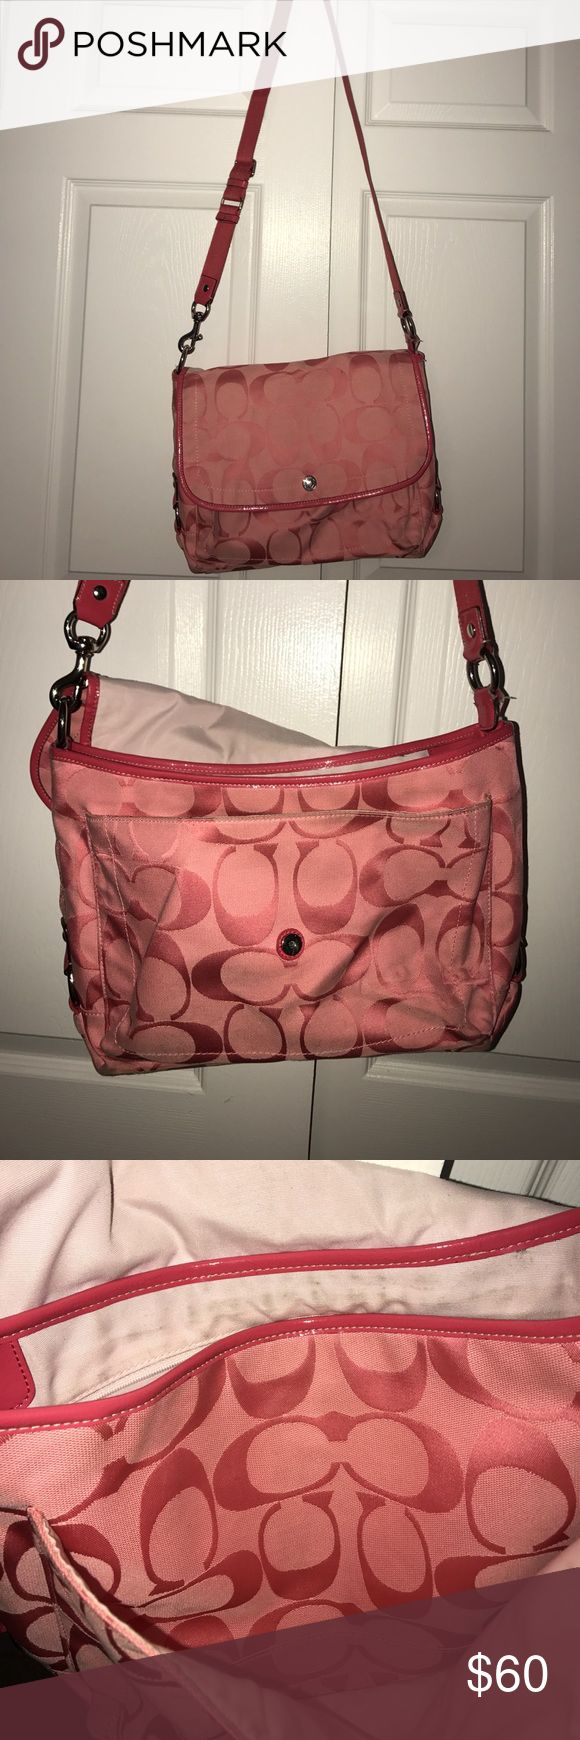 """Pink COACH Messenger Bag Pink COACH Messenger Bag 